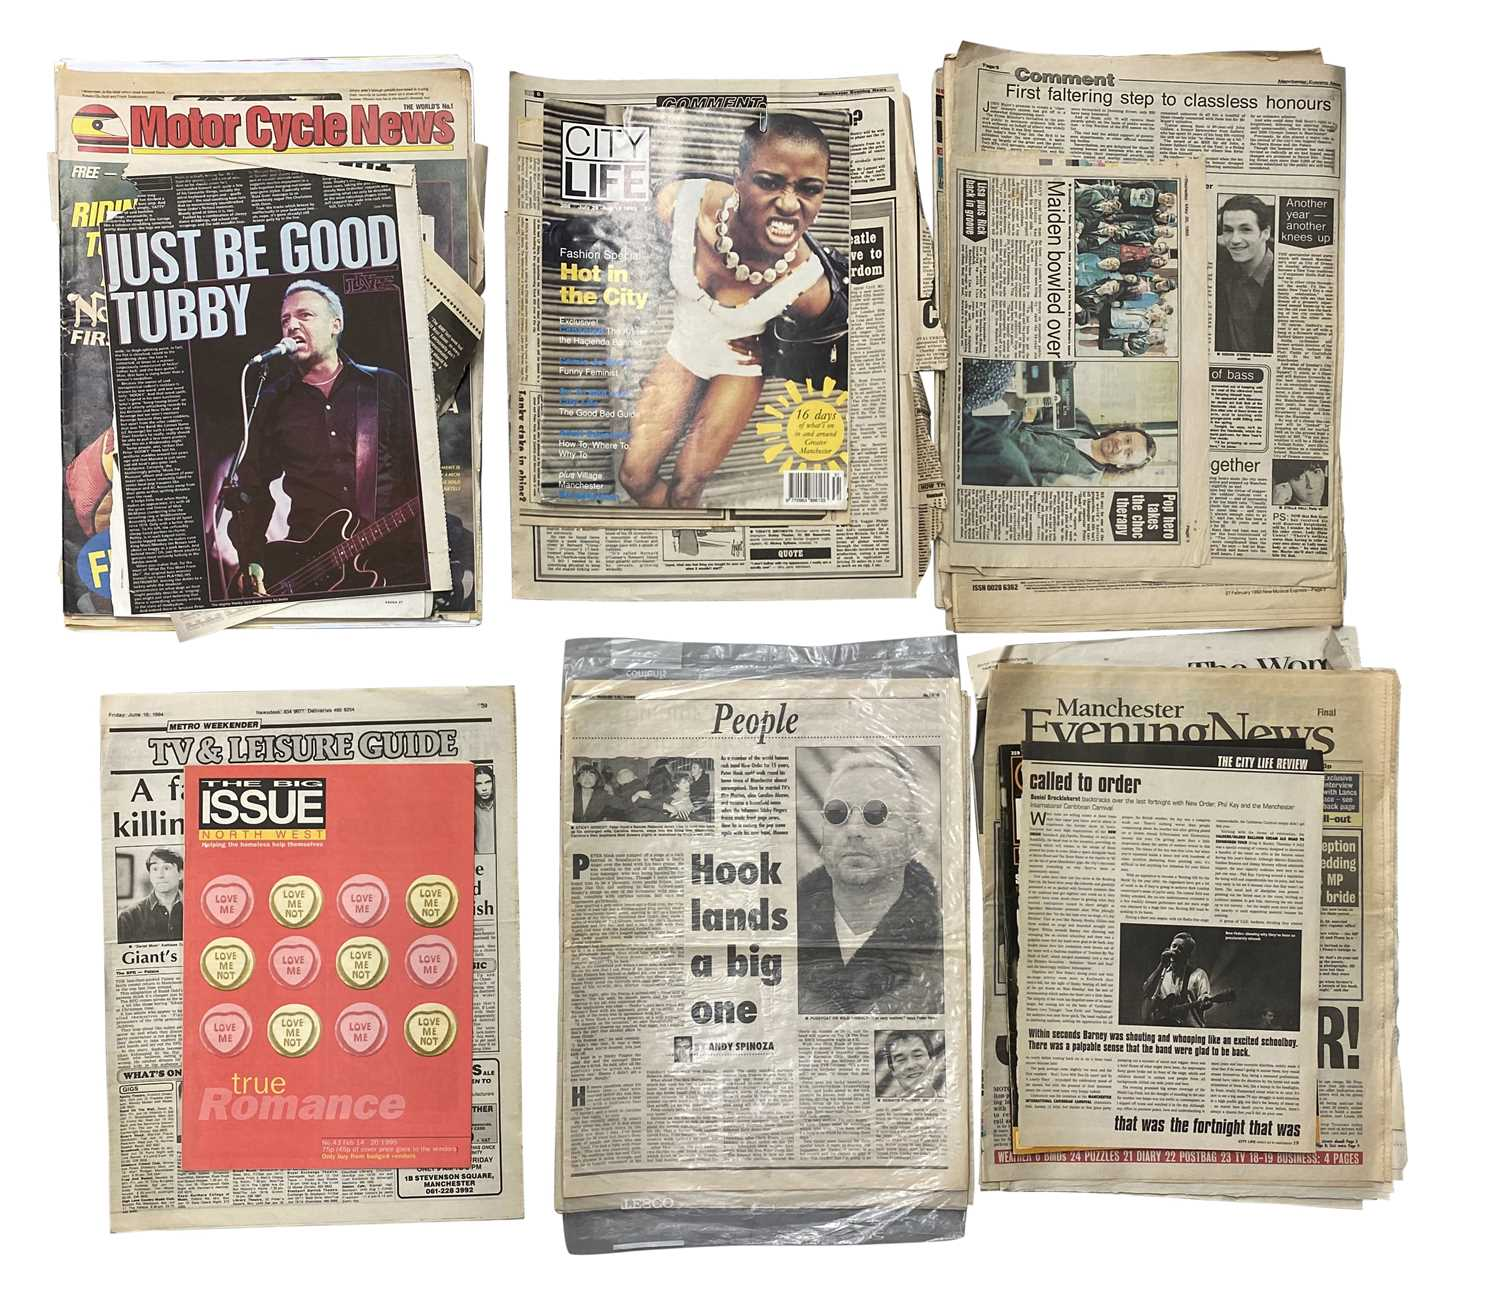 NEW ORDER & RELATED PRESS CUTTINGS ARCHIVE